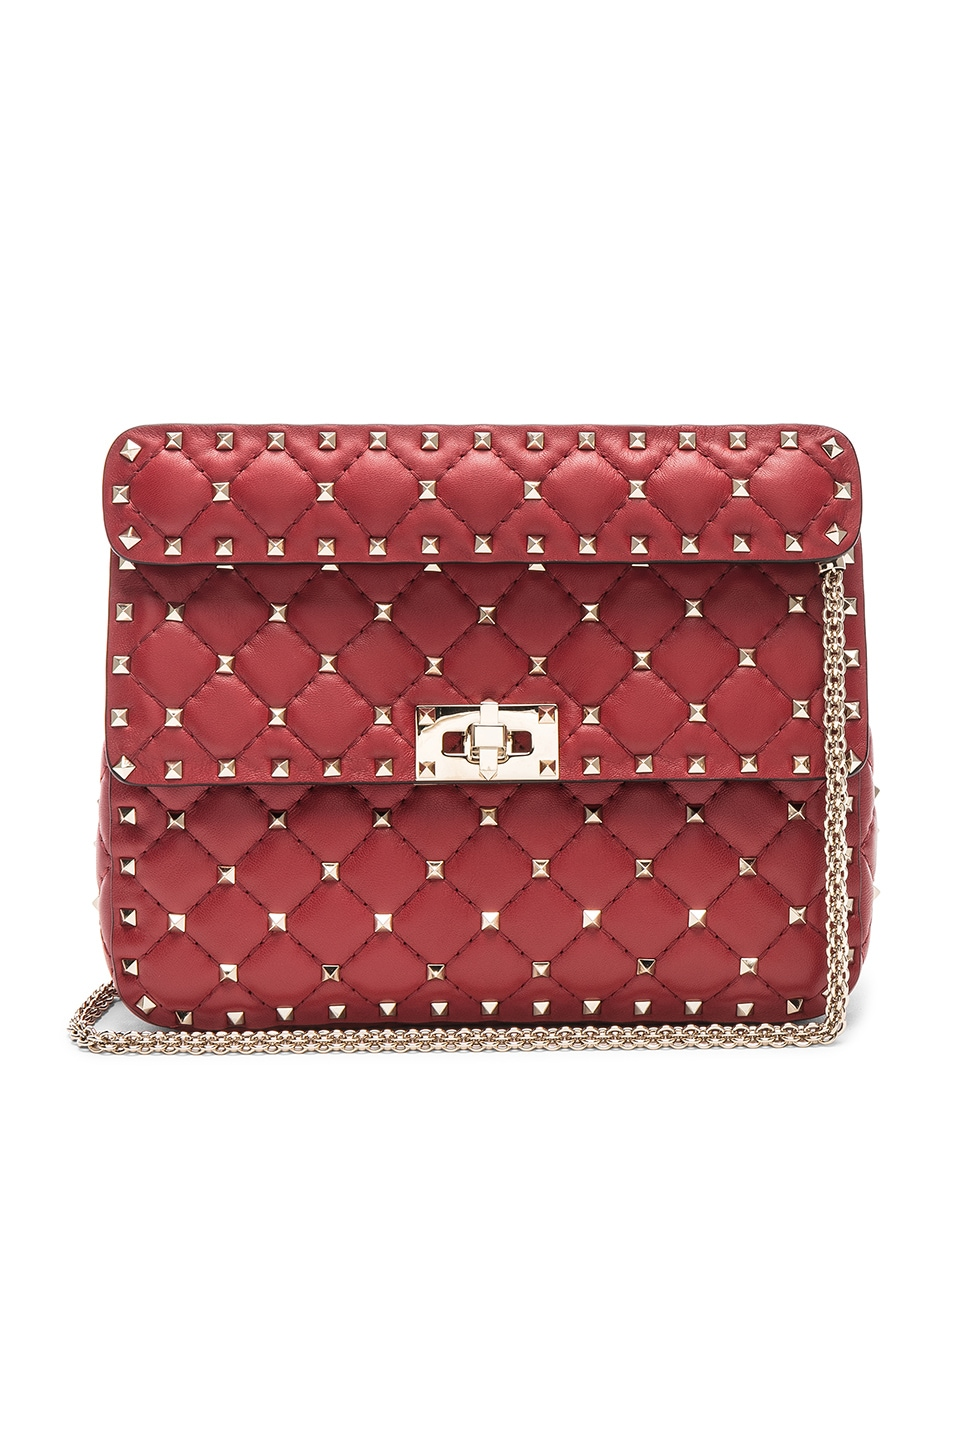 Image 1 of Valentino Rockstud Spike Medium Shoulder Bag in Red